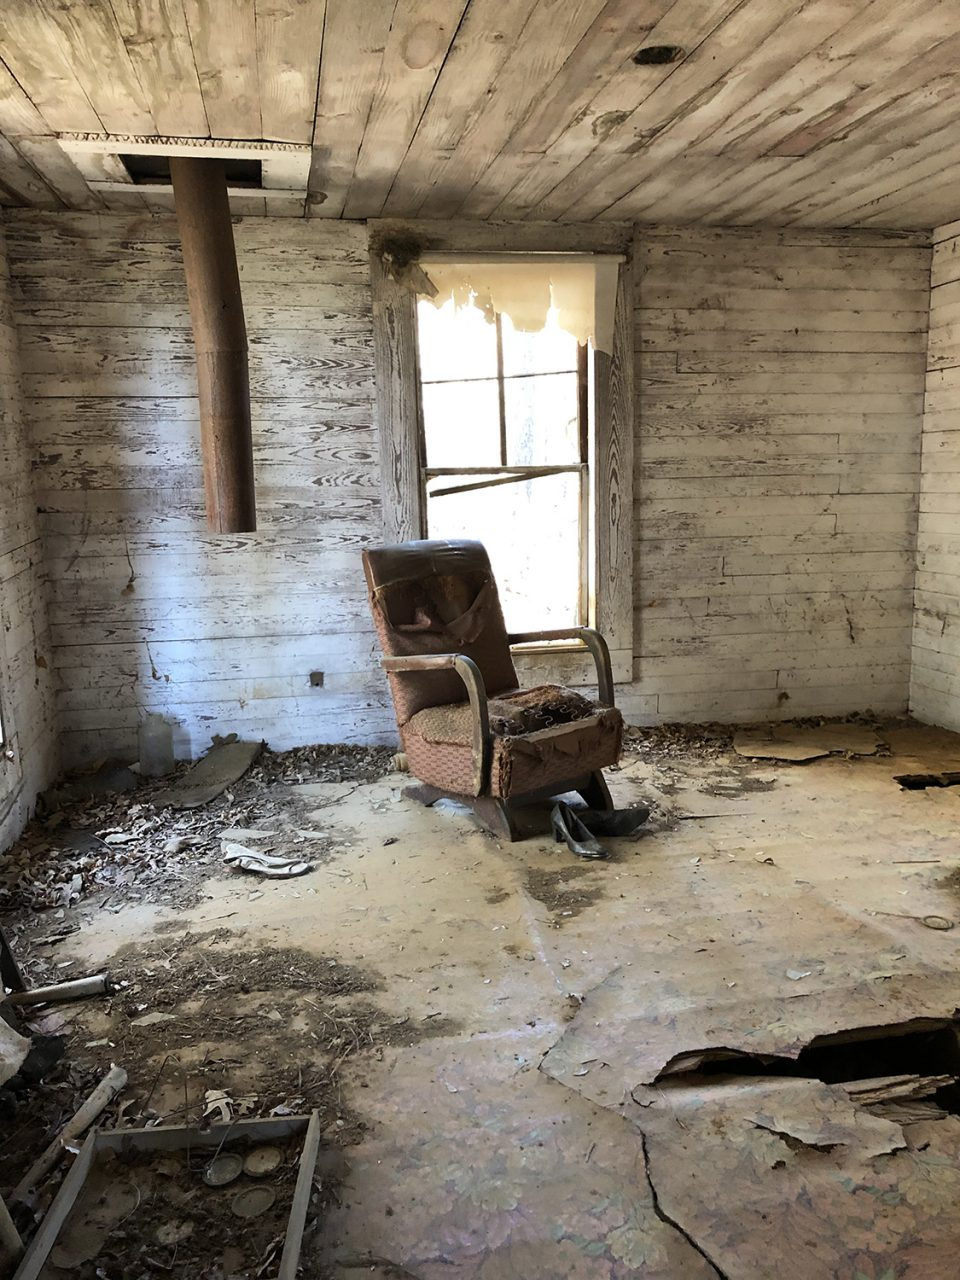 The old chair has women's shoes in front of it, which were probably placed by a previous visitor. The stove pipe remains even though the stove is long gone. All that remains of the window shade are tatters blowing in the breeze.